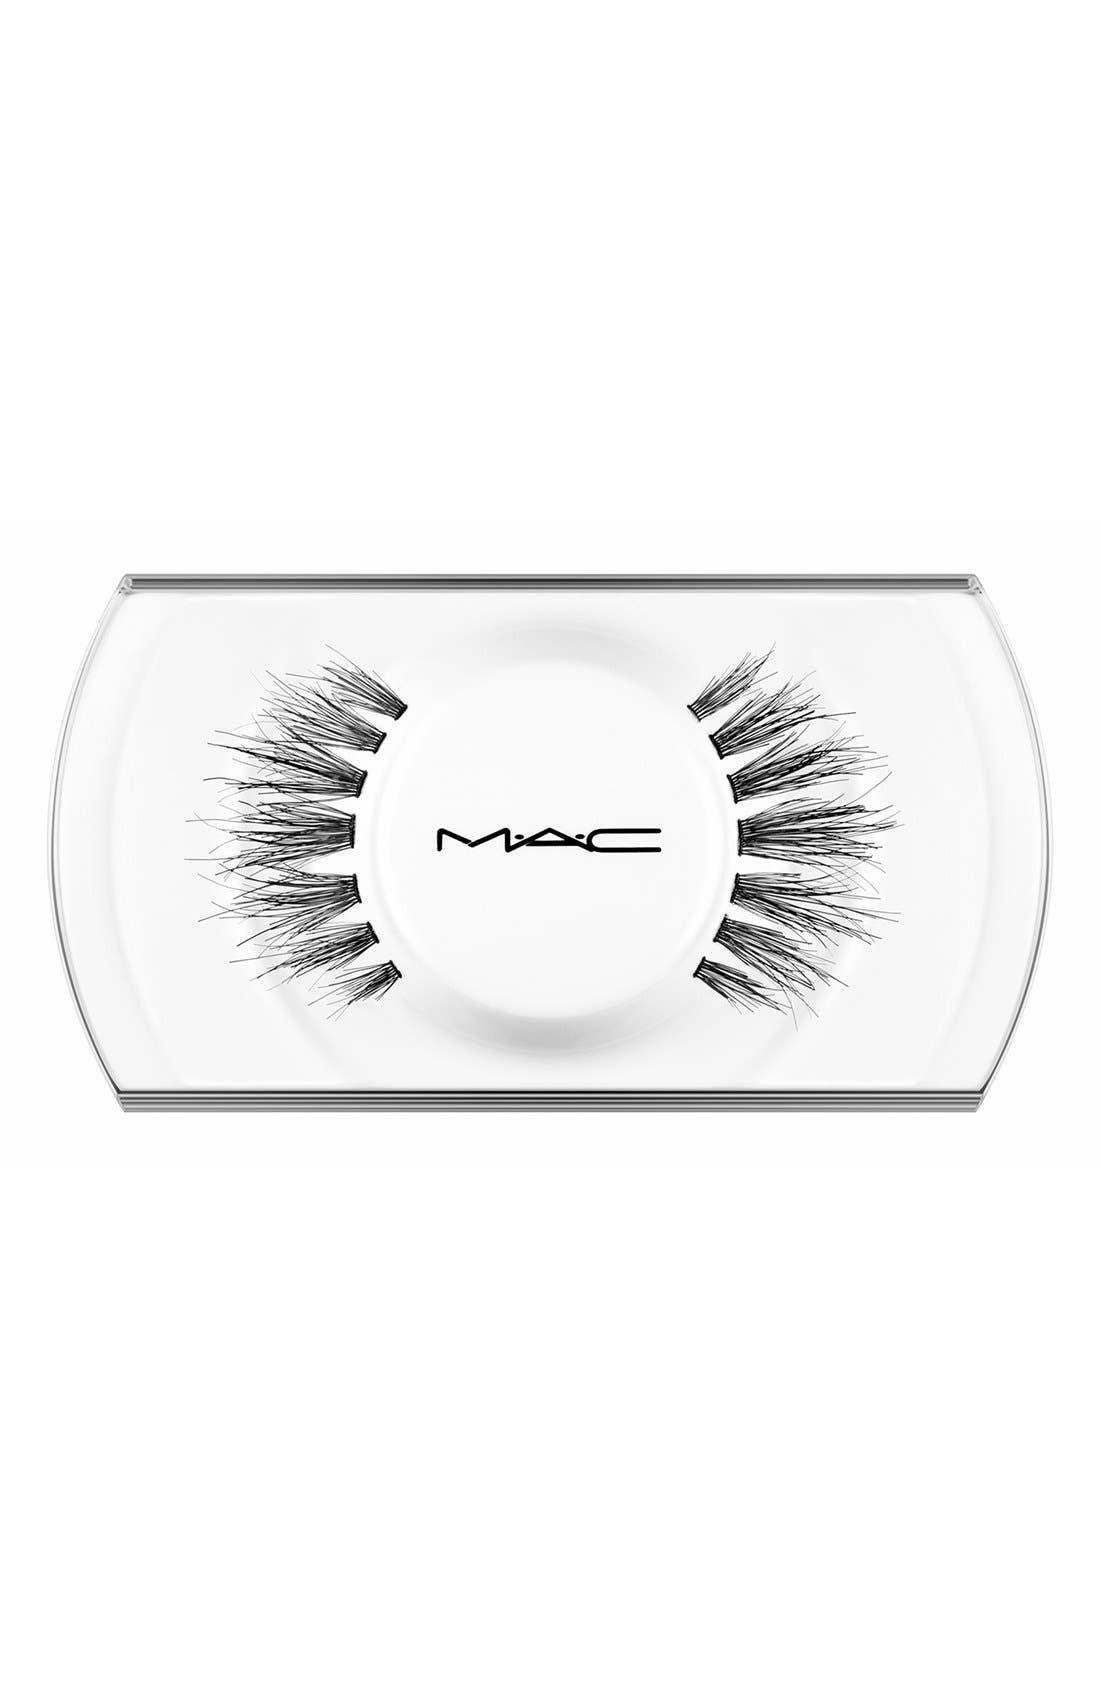 What it is: A pair of false lashes to give you slightly more dramatic length and provide eye-opening fullness toward the center of the eye. What it does: Handmade to exact specifications, the lashes are perfectly shaped and arranged to give a striking effect, whether you\\\'re going for a natural or dramatic look. MAC false lashes are available in a variety of shapes and densities. If properly cared for, the lashes can be reshaped or readorned as